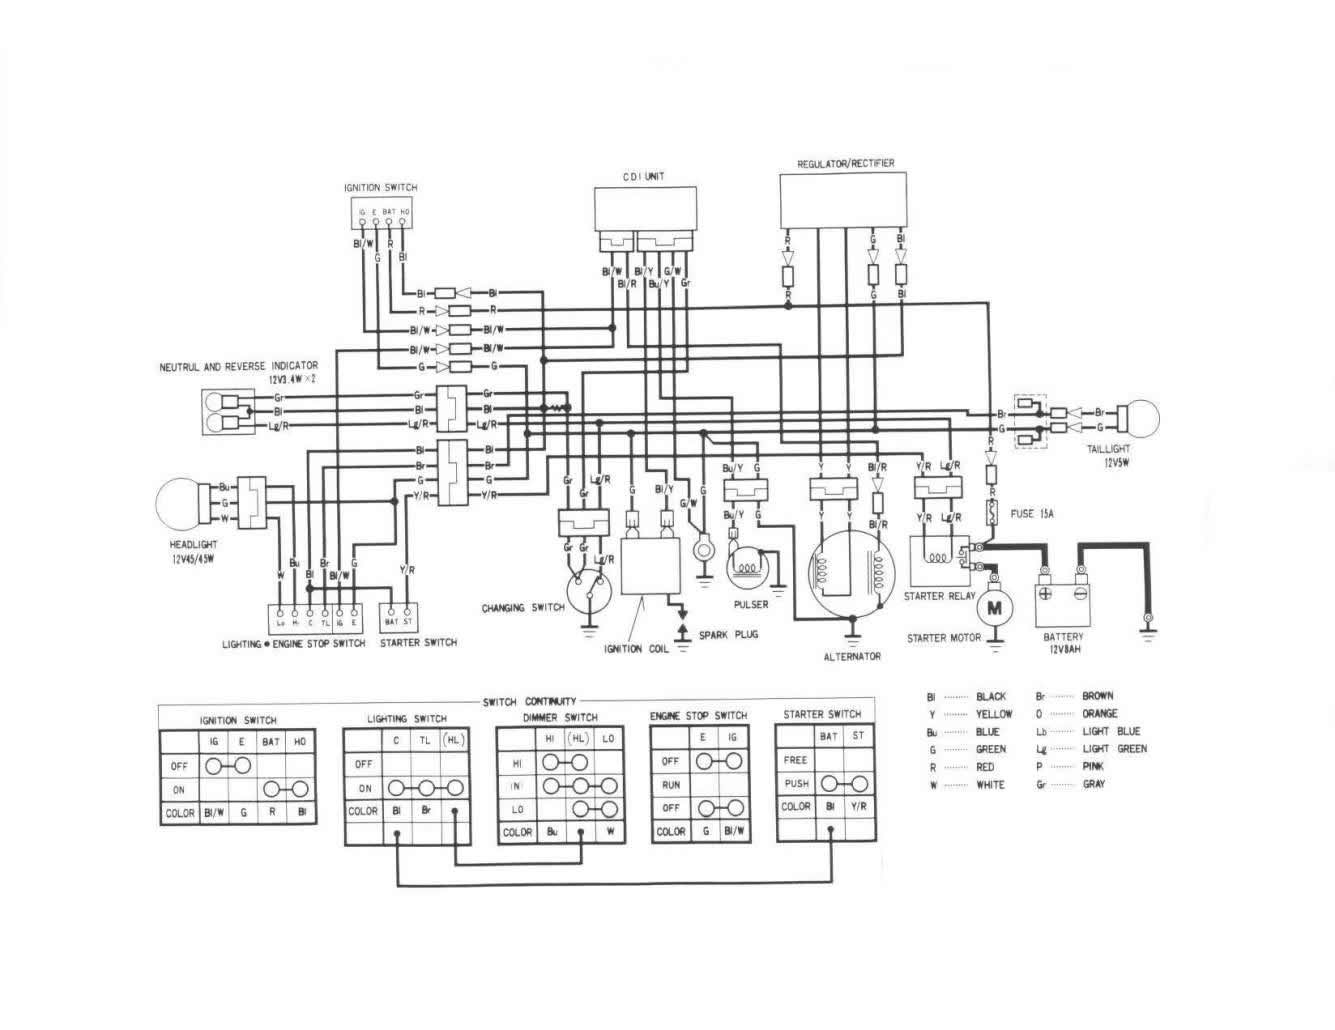 Kawasaki Mule 3000 Ignition Wiring Diagram 1995 Kawasaki